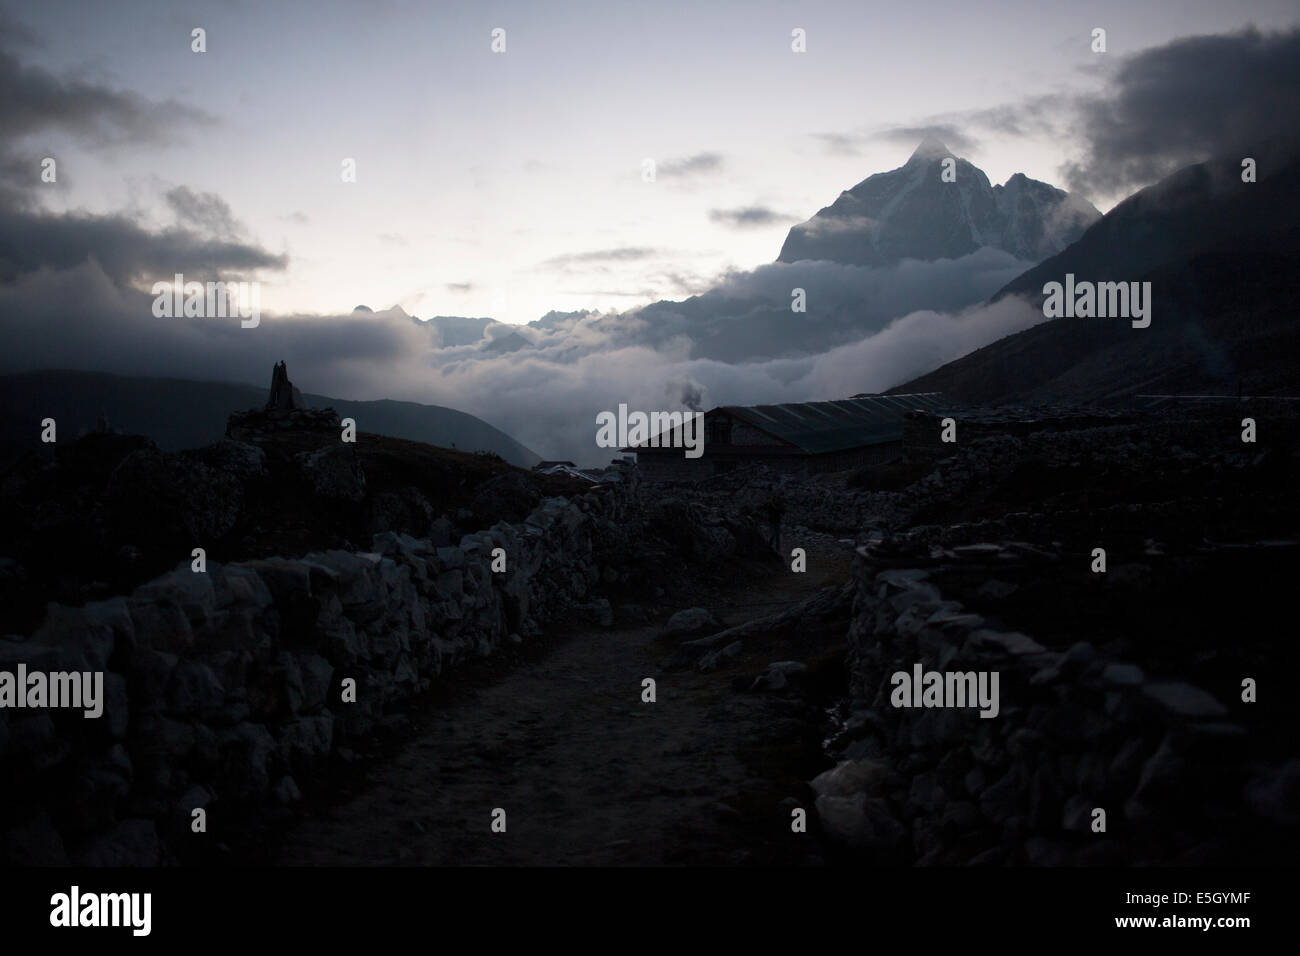 Village called Chukhung in the Everest region in Nepal - Stock Image